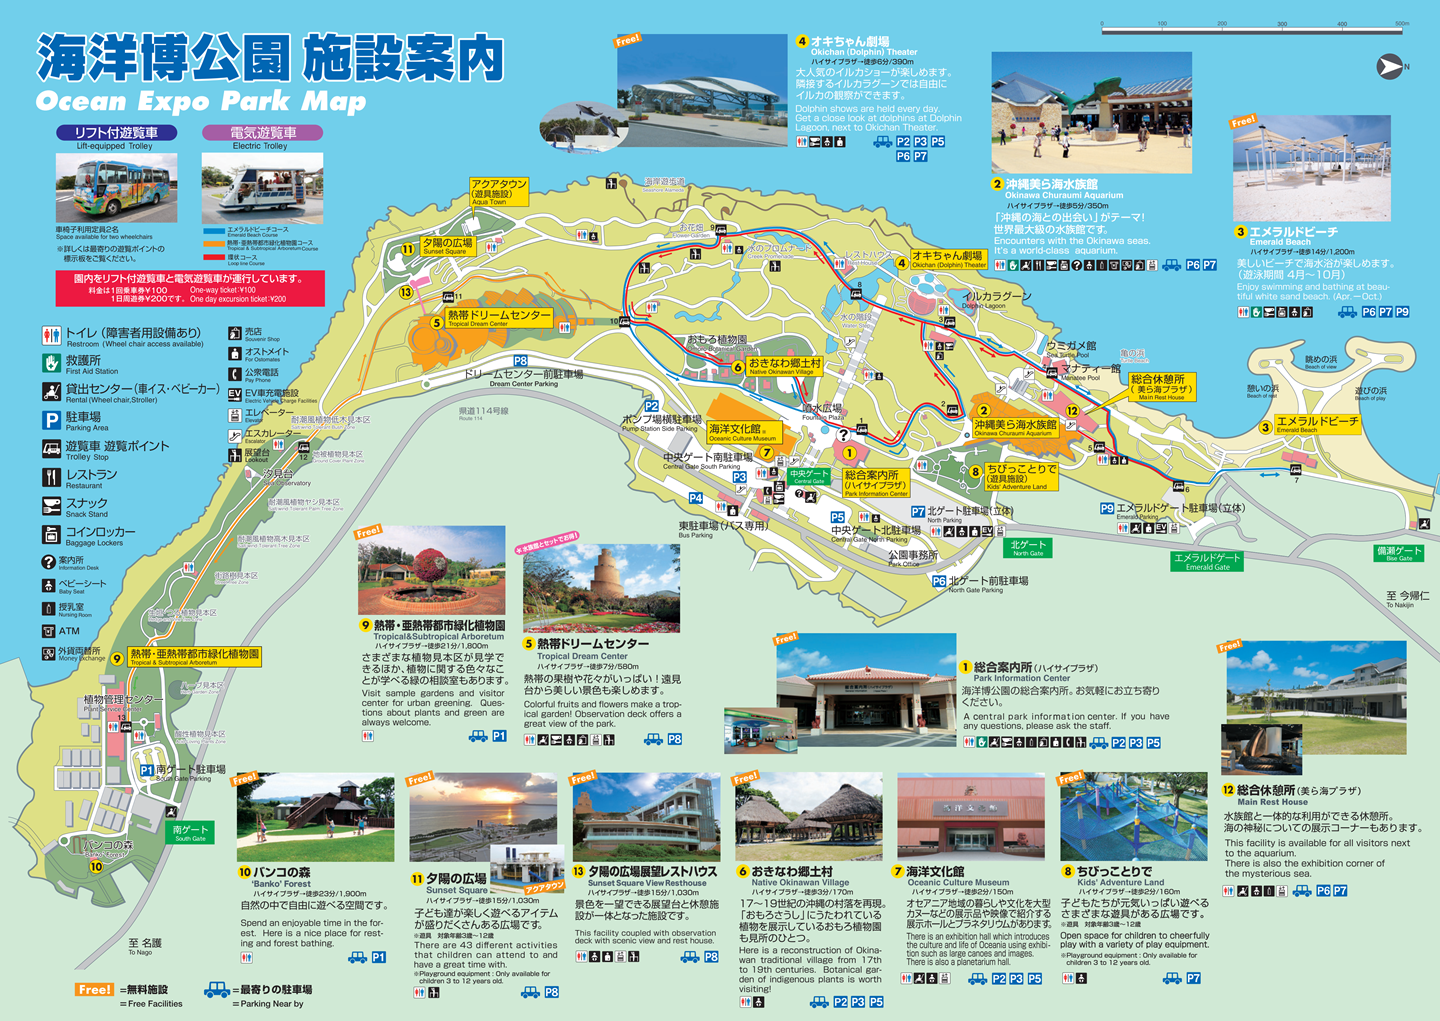 h2811_jp-en_pamphleta-map.png